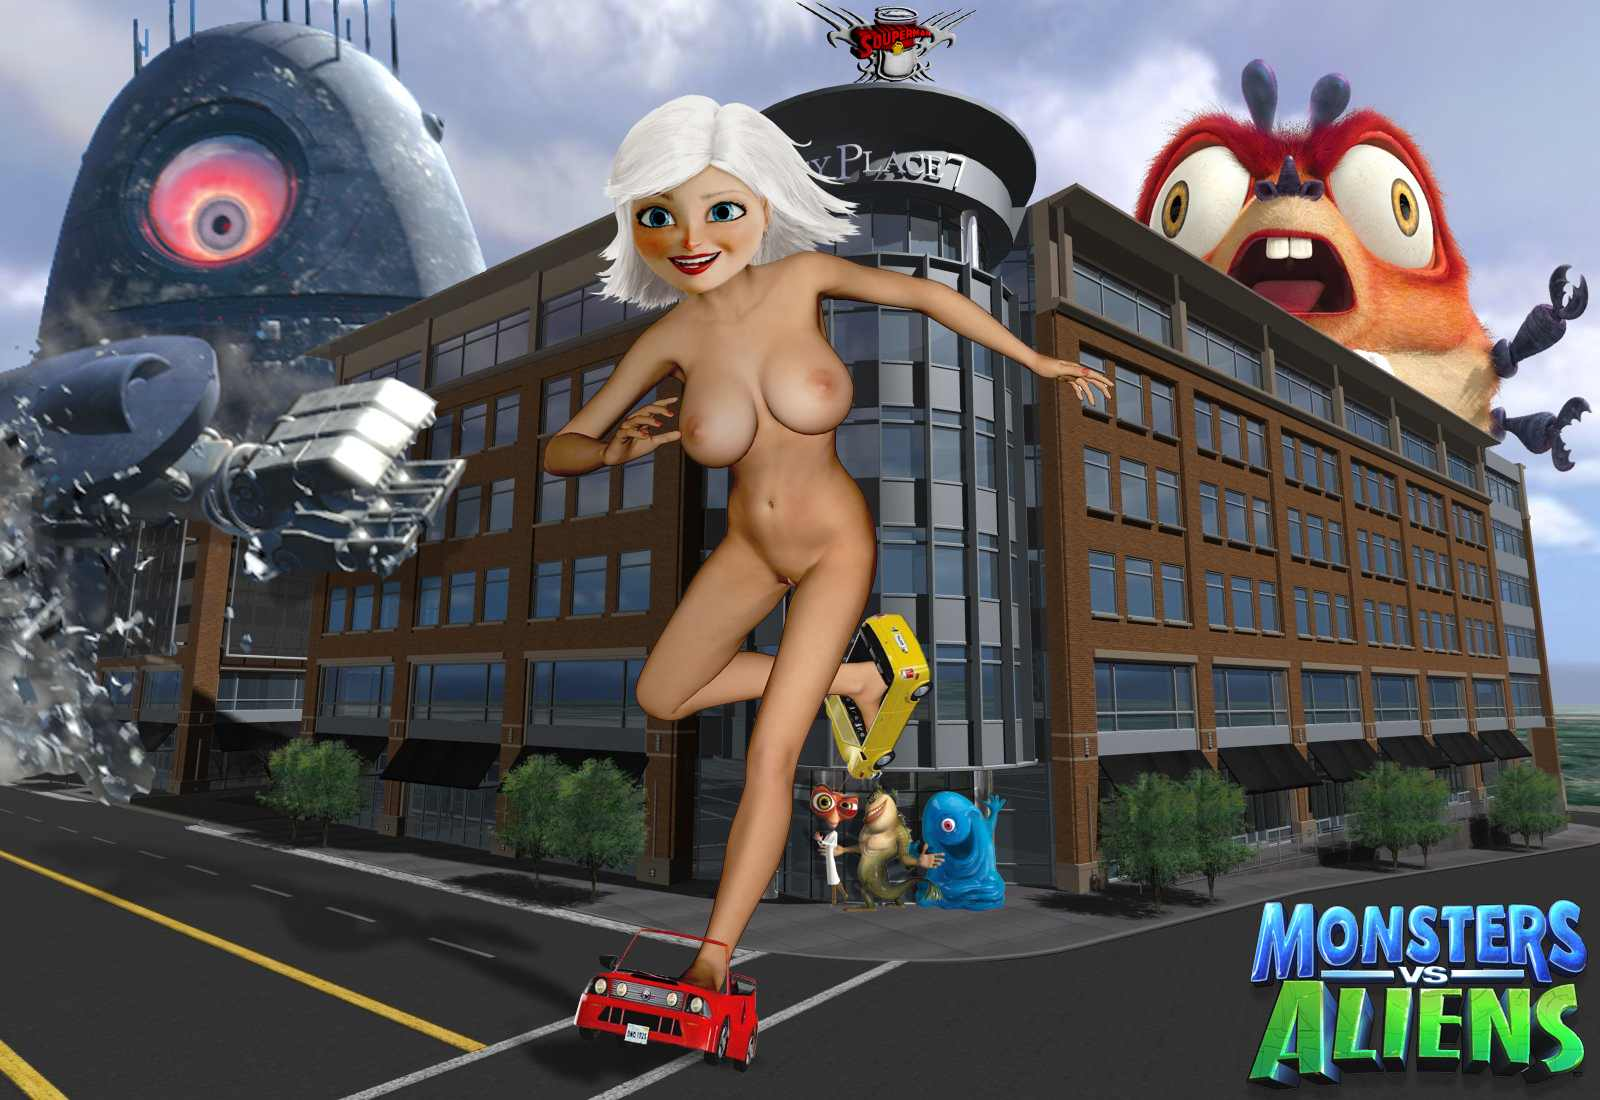 Monsters vs aliens porno pictures fucks image